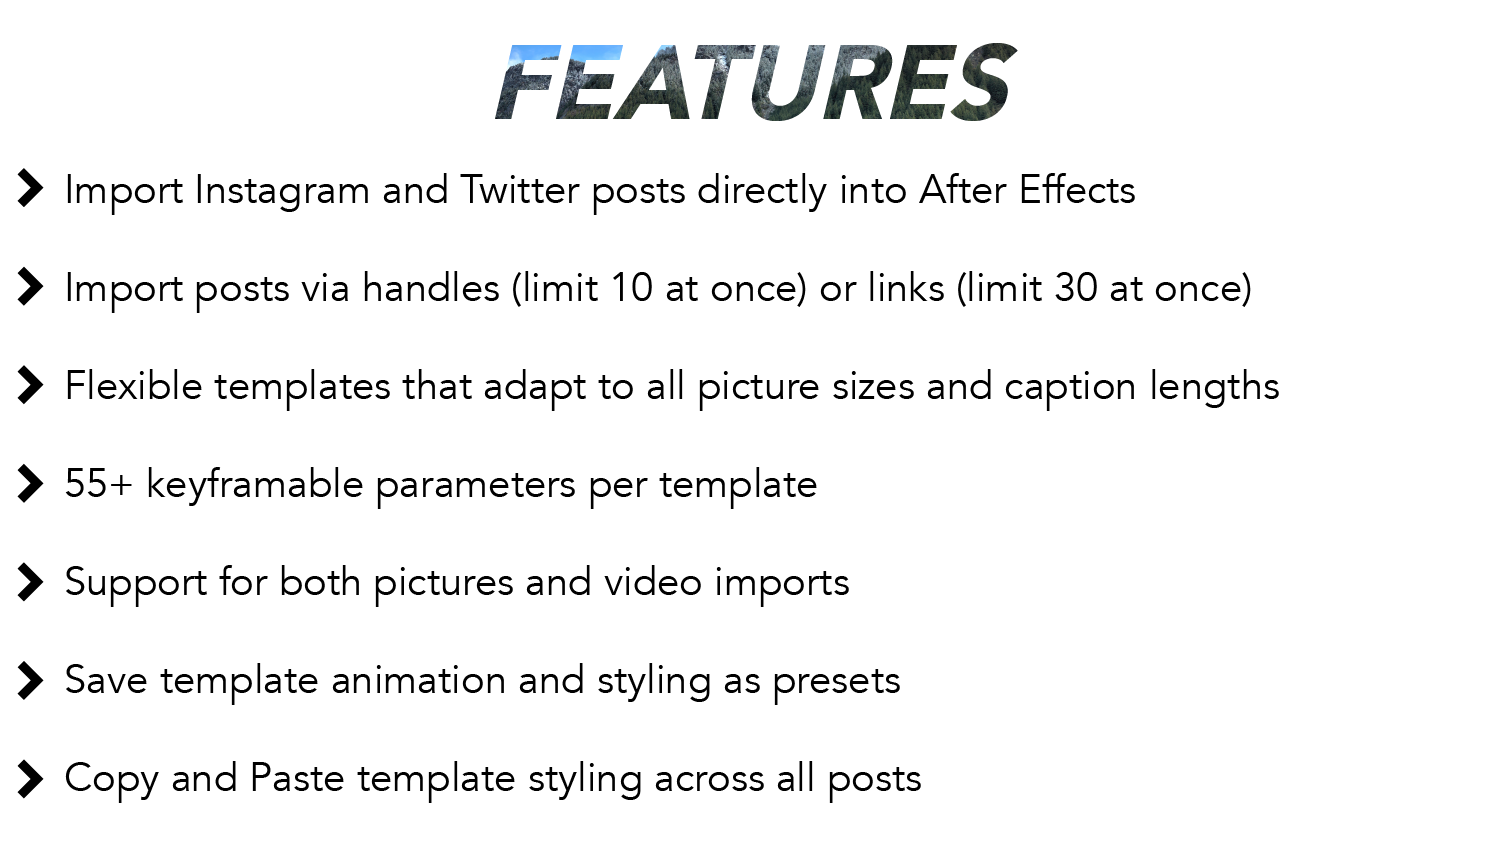 Features: Import Instagram and Twitter posts directly into After Effects. Import posts via handles (limit 10 at once) or links (limit 30 at once). Flexible templates that adapt to all picture sizes and caption lengths. 55+ keyframable parameters per template. Support for both pictures and video imports. Save template animation and styling as presets. Copy and paste template styling across all posts.